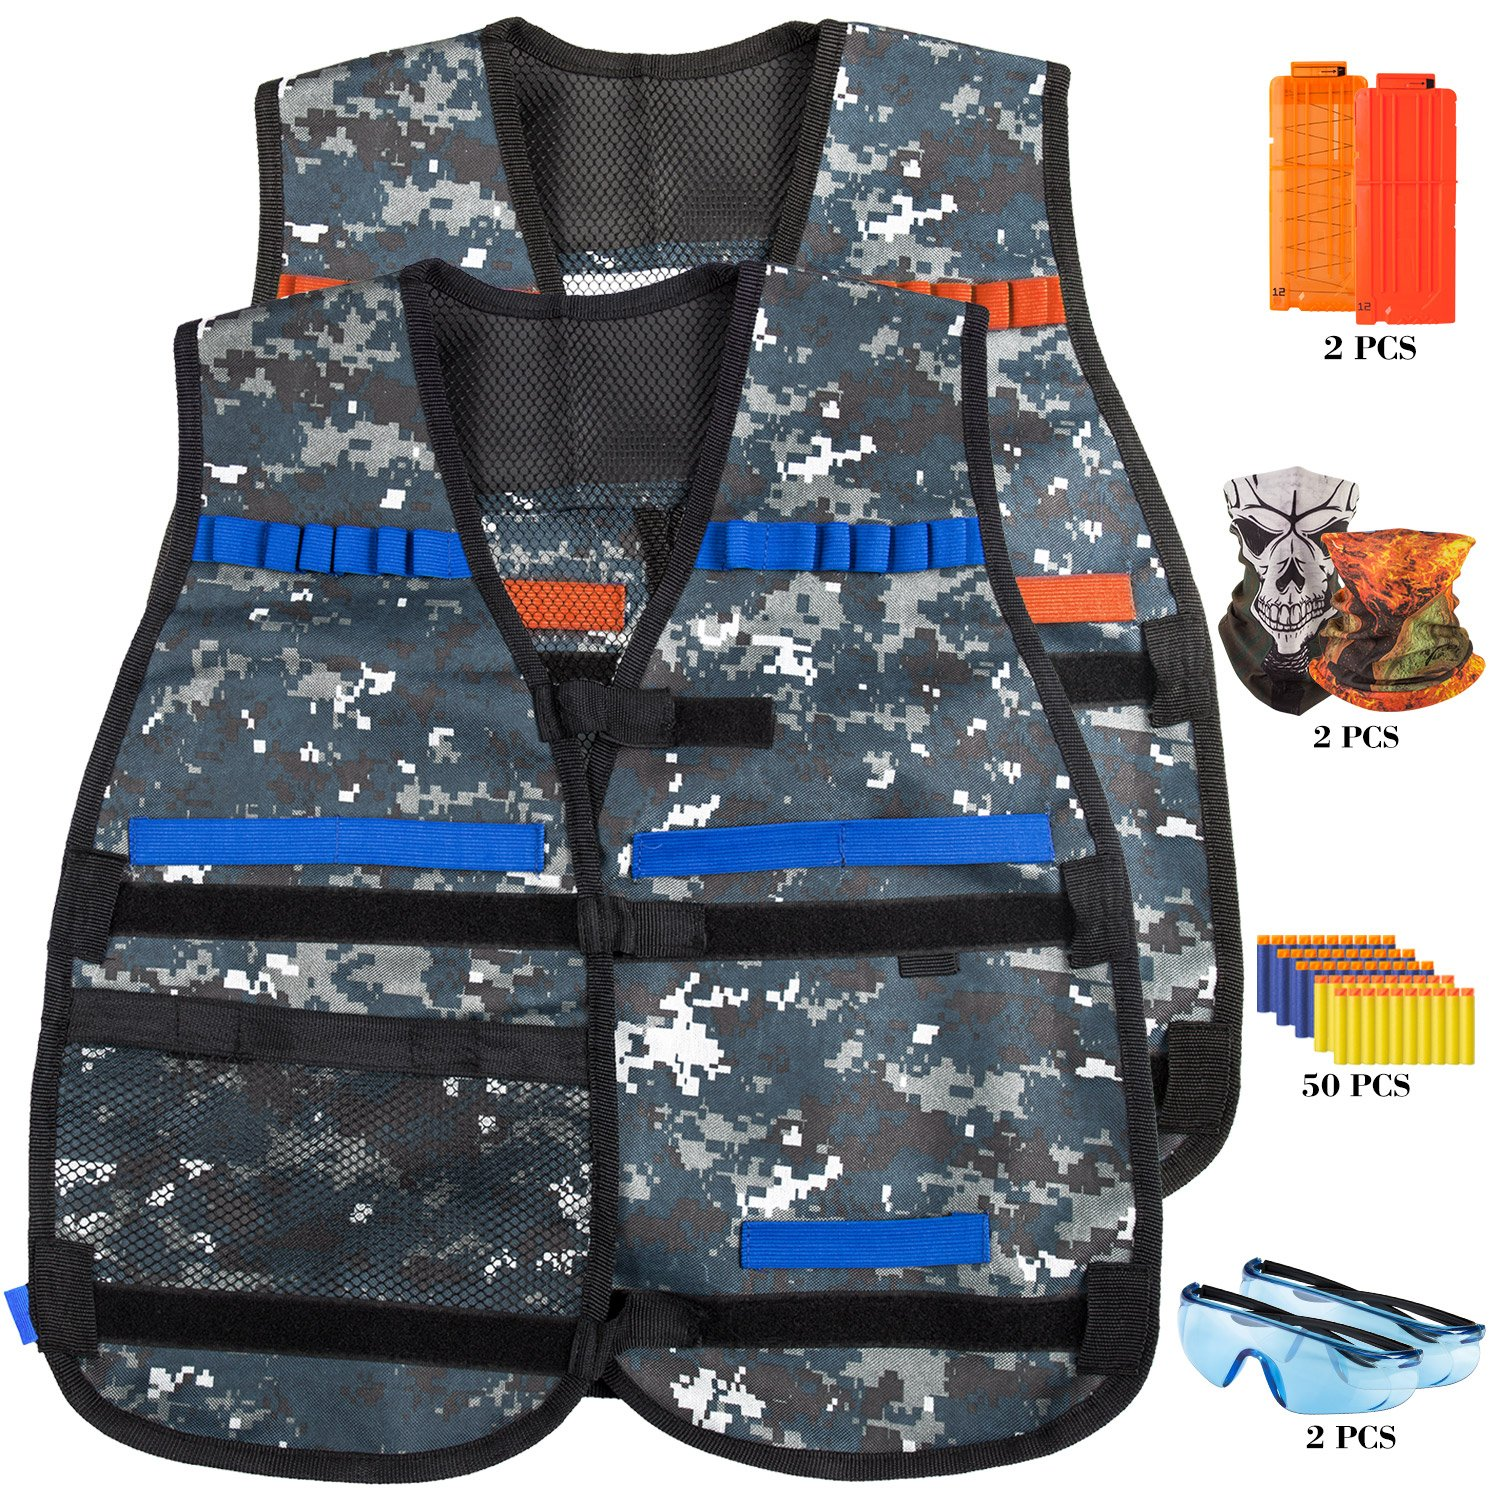 YaFex Tactical Vest Kit, Kids Elite Tactical Vest for Nerf Guns N-Strike Elite Series with 2 Quick Reload Clips, 2 Protective Glasses, 50 foam bullets and 2 Face Tube Mask by YaFex